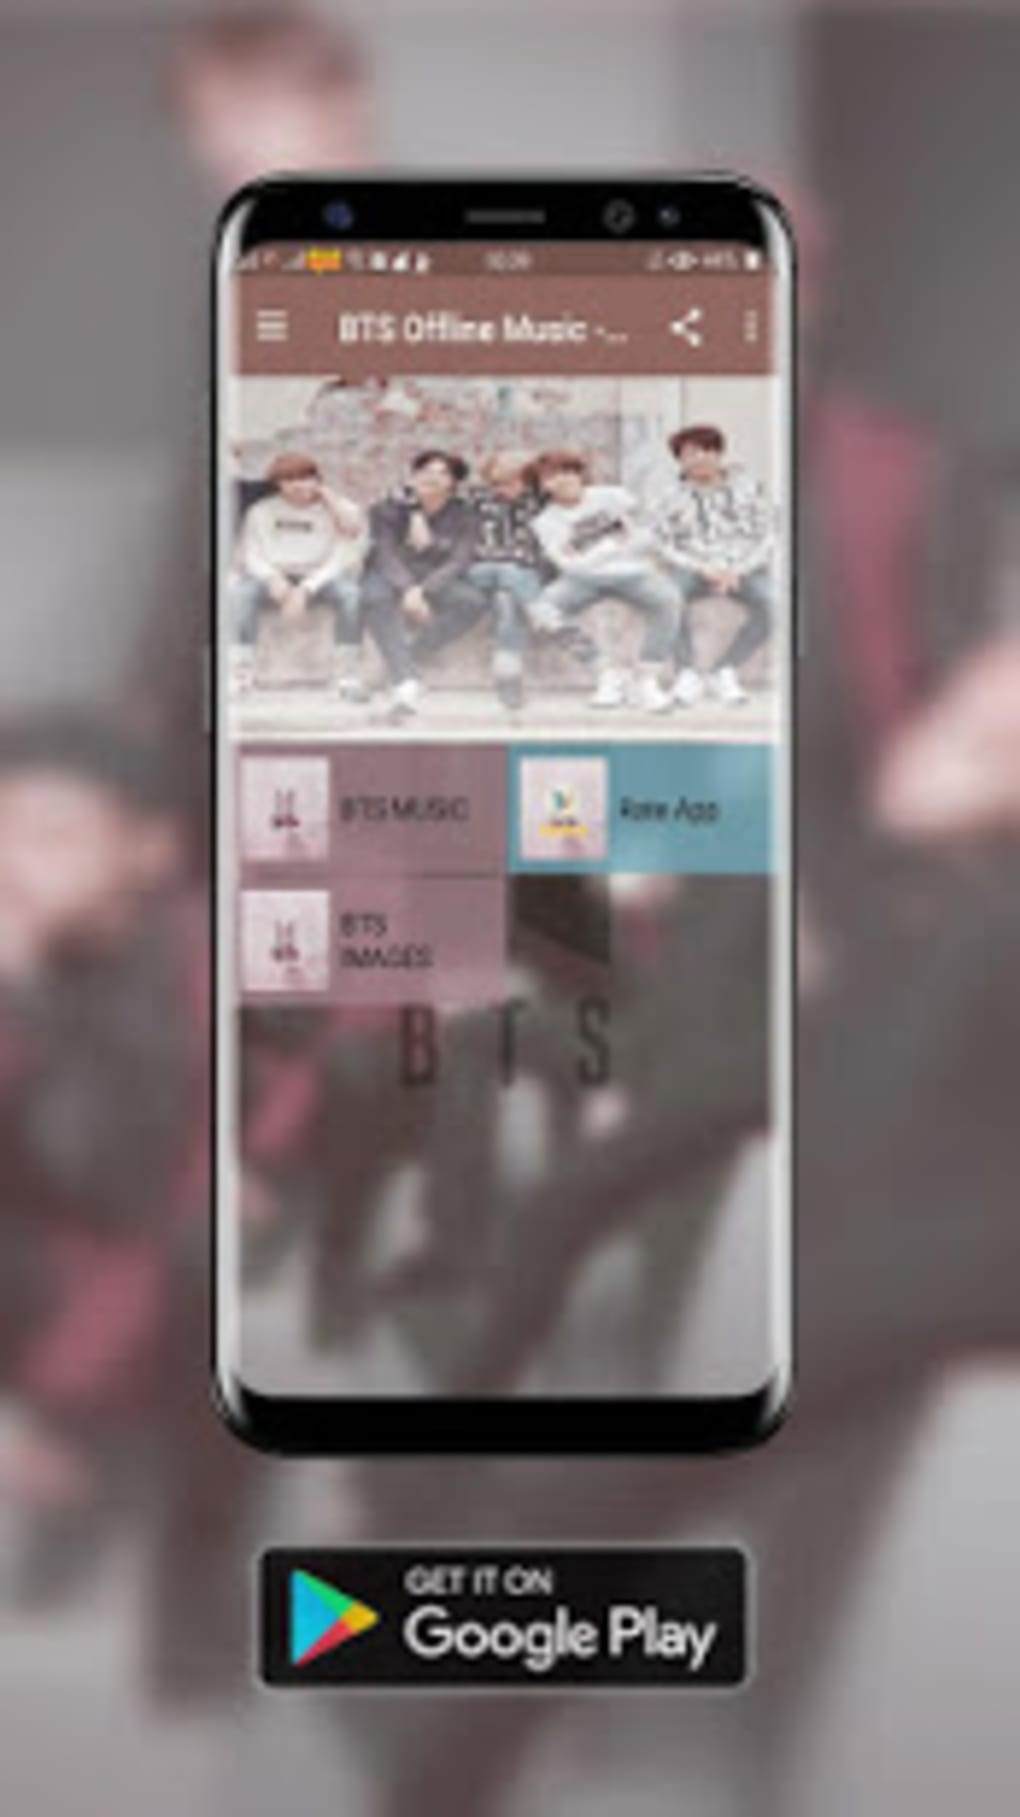 BTS Music Offline for Android - Download